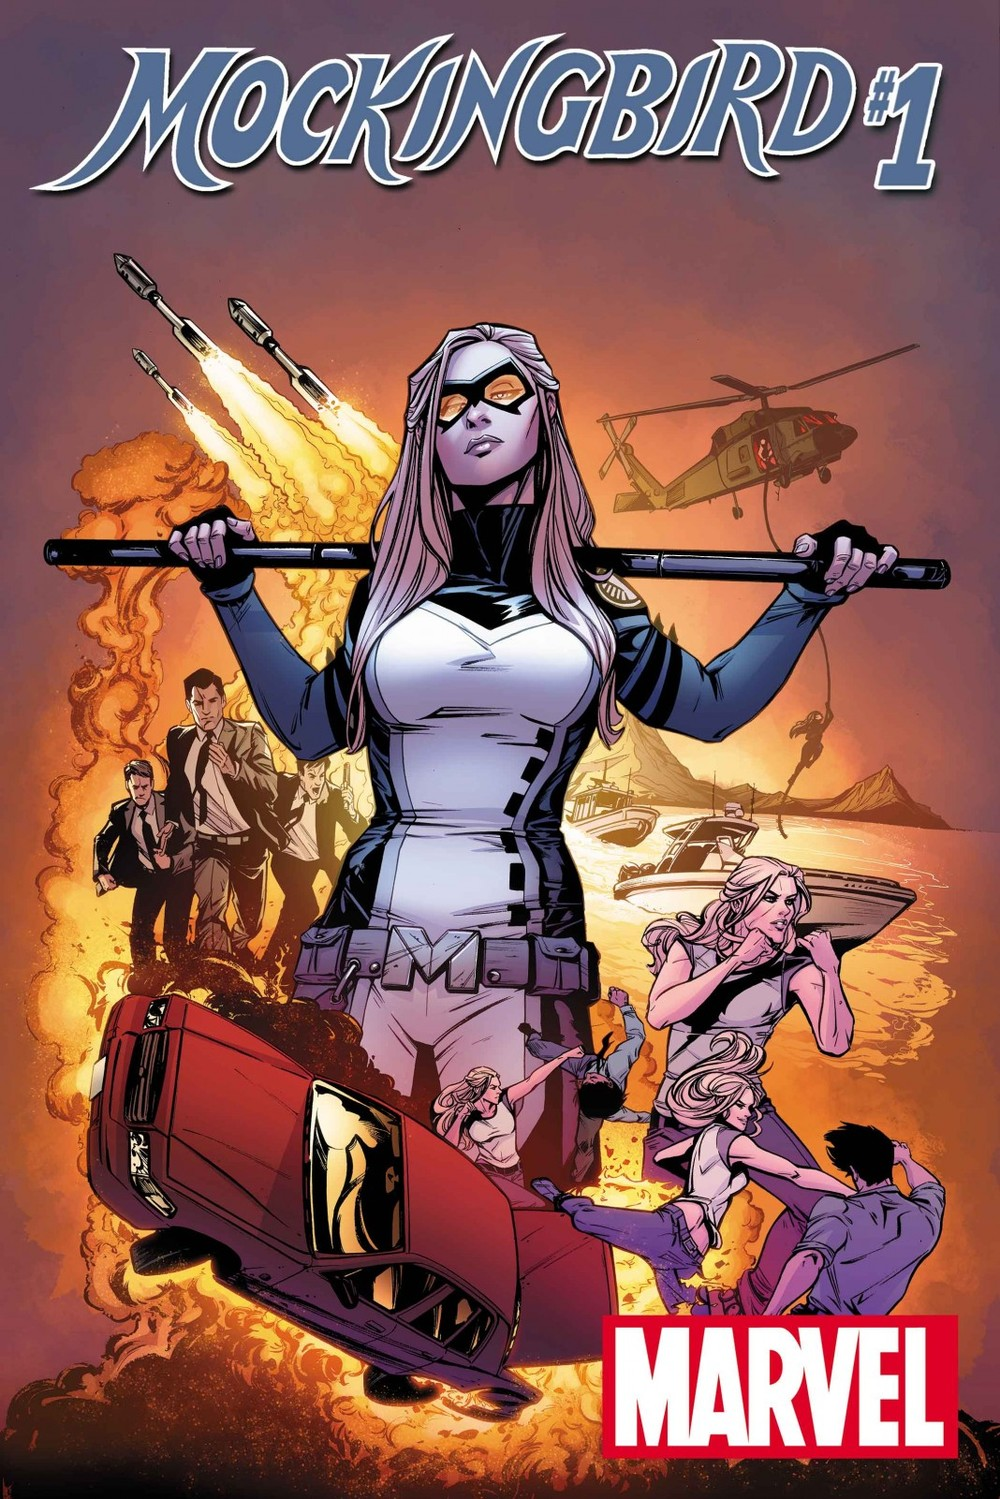 Marvel's Mockingbird #1